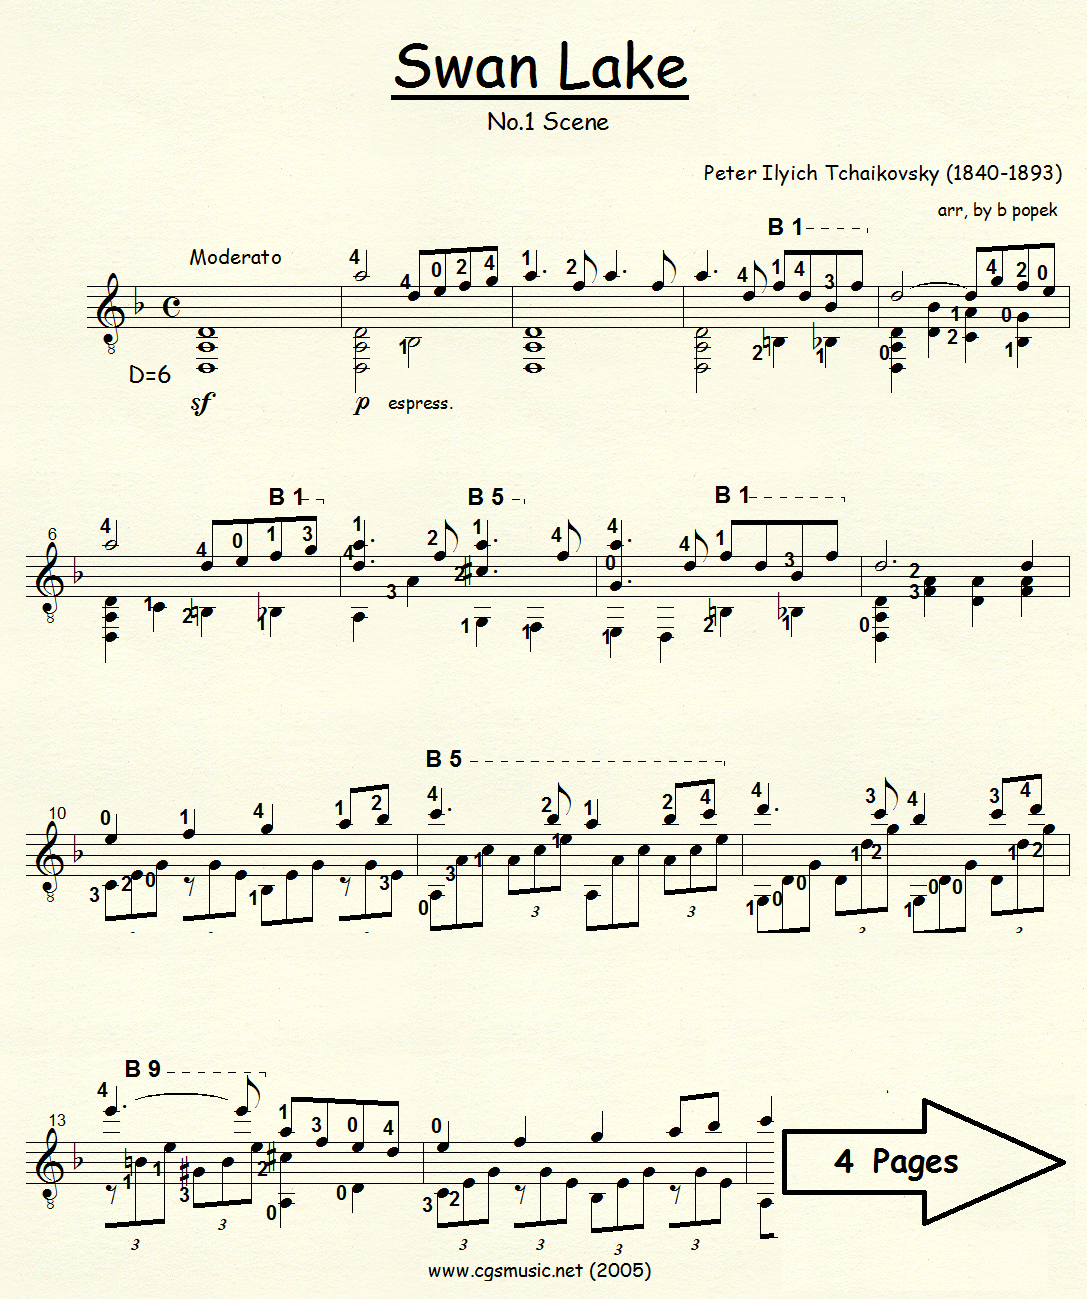 Swan Lake No. 1 (Tchaikovsky) for Classical Guitar in Standard Notation